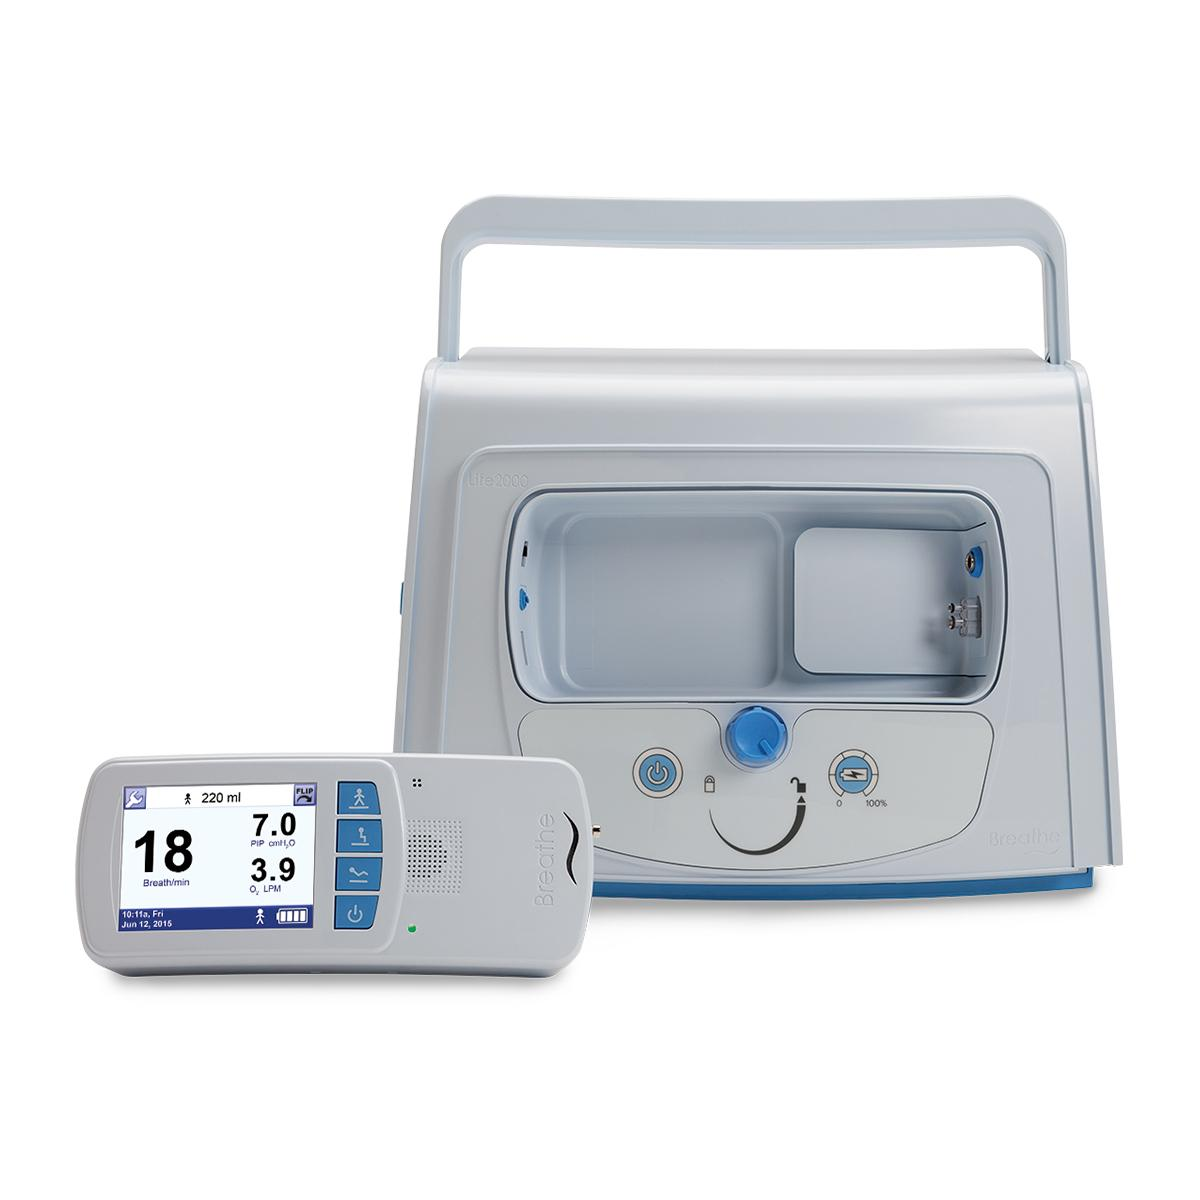 The Hillrom™ Life2000 System's compact compressor and lightweight, wearable ventilator with bright display screen are shown.